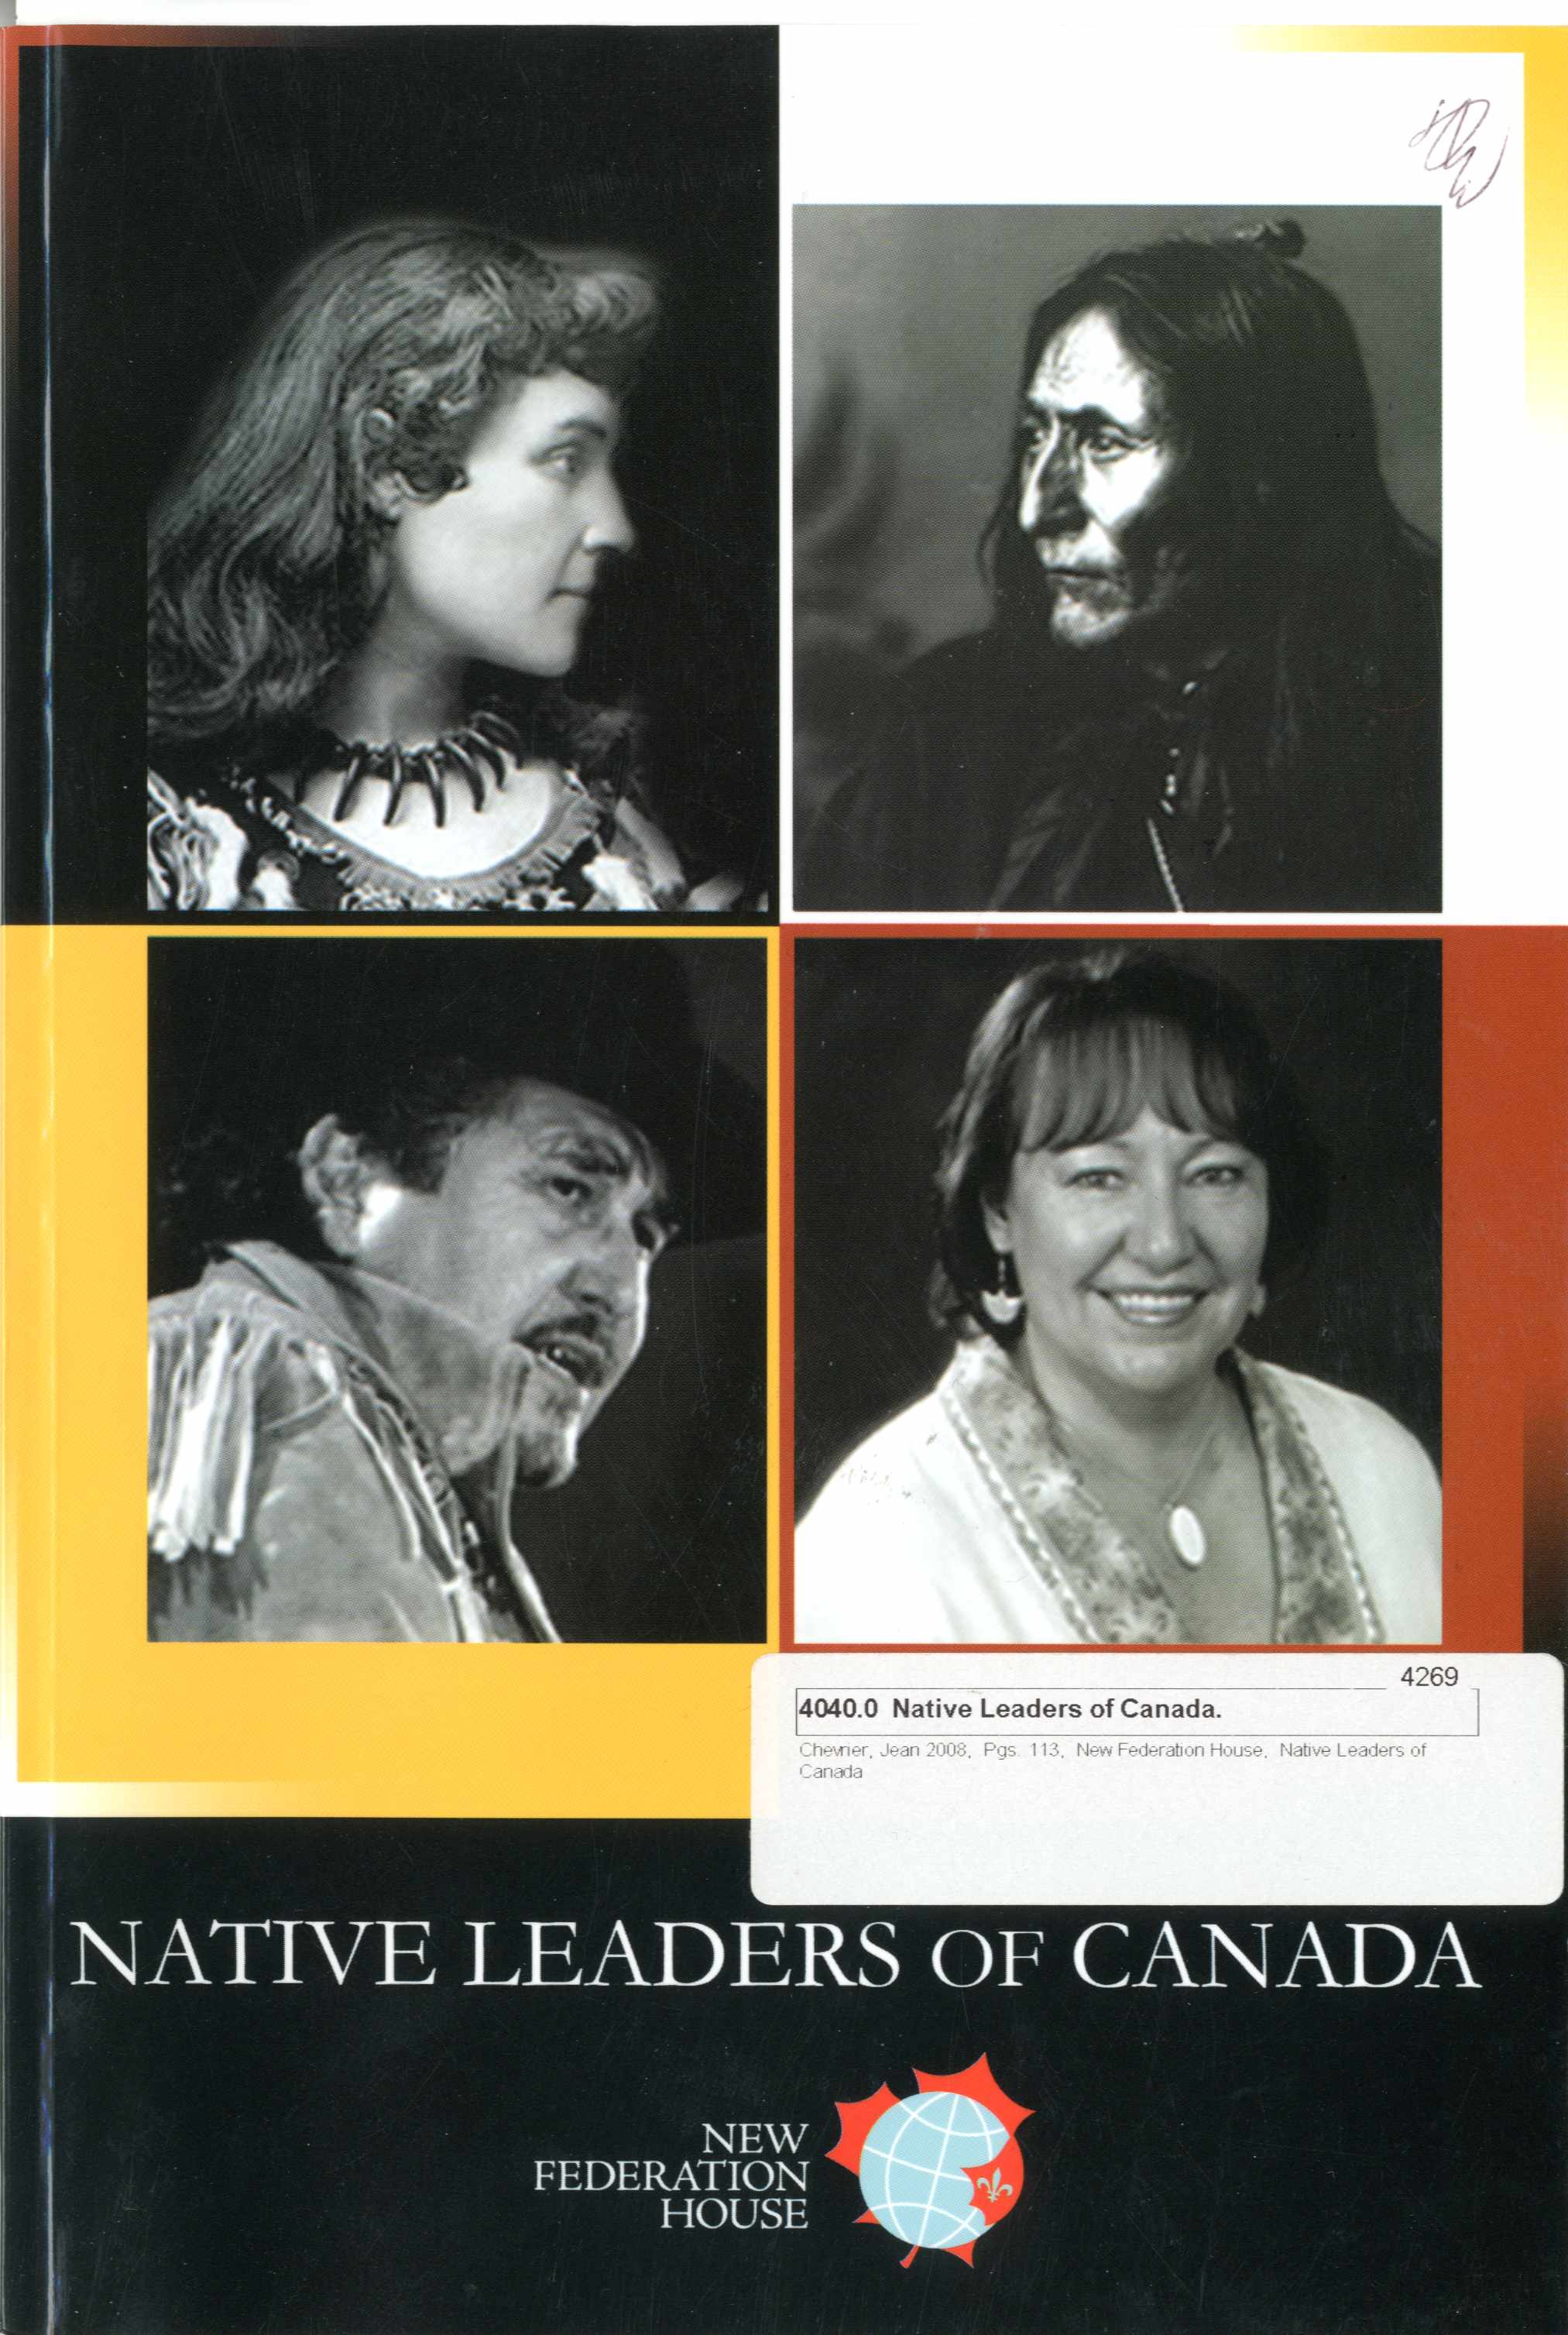 Native Leaders of Canada Image